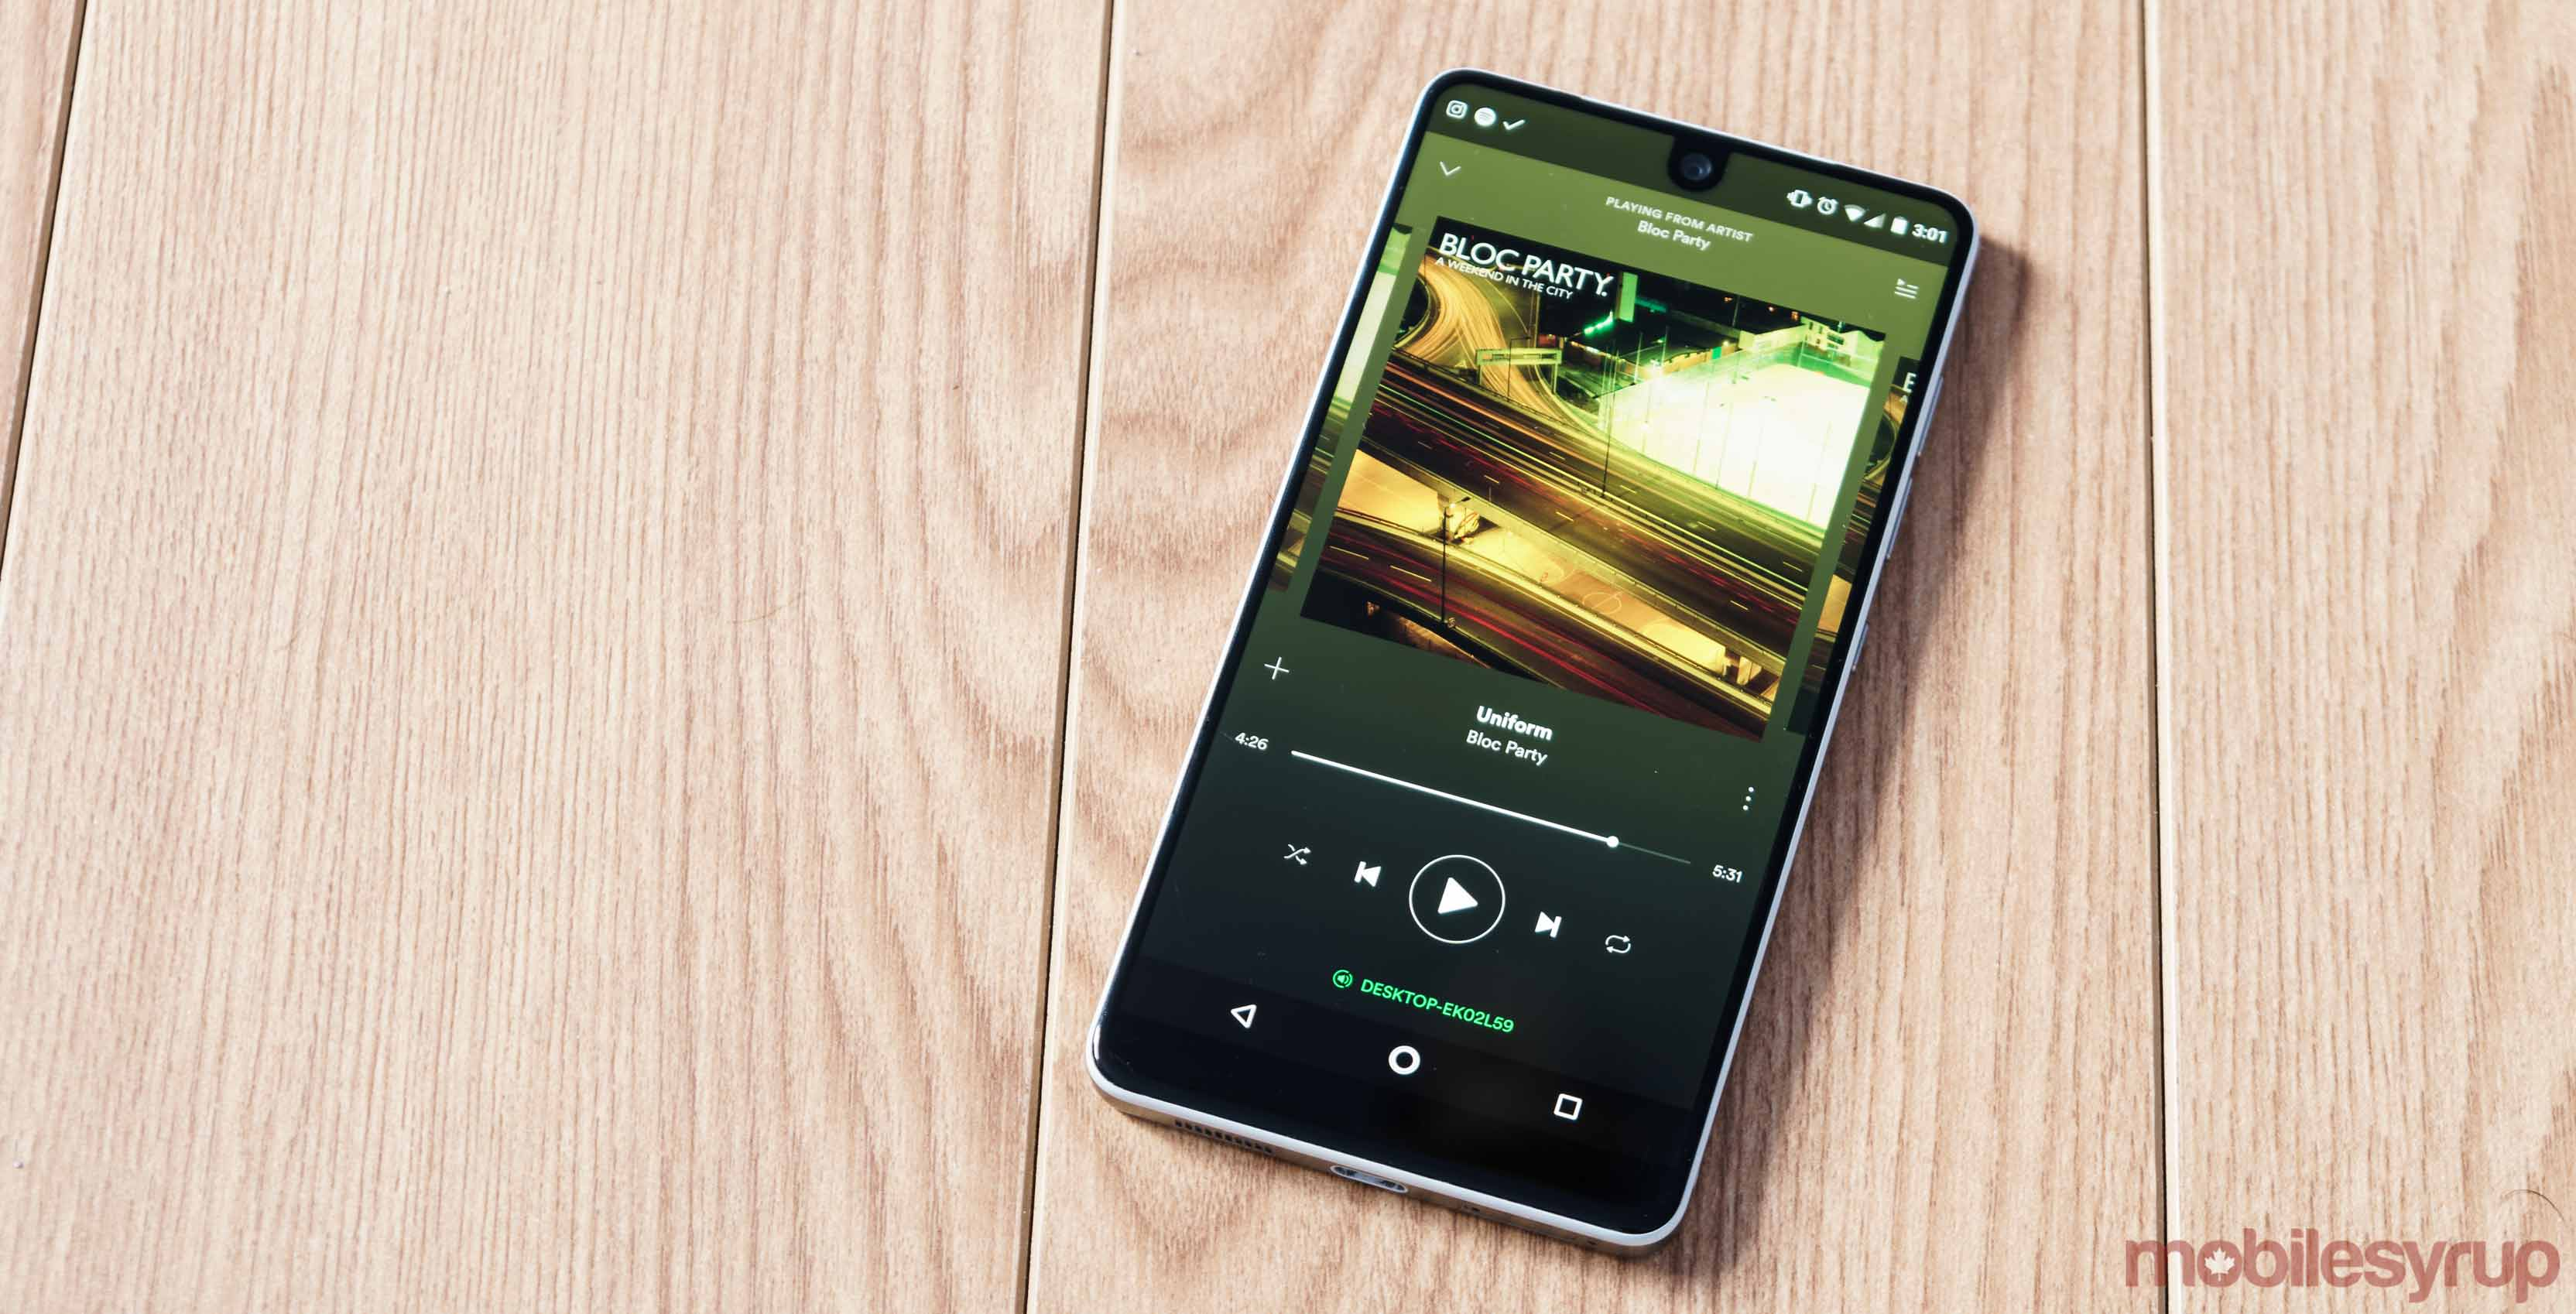 Spotify's 'Spotlight' feature adds a visual touch to podcasts and news